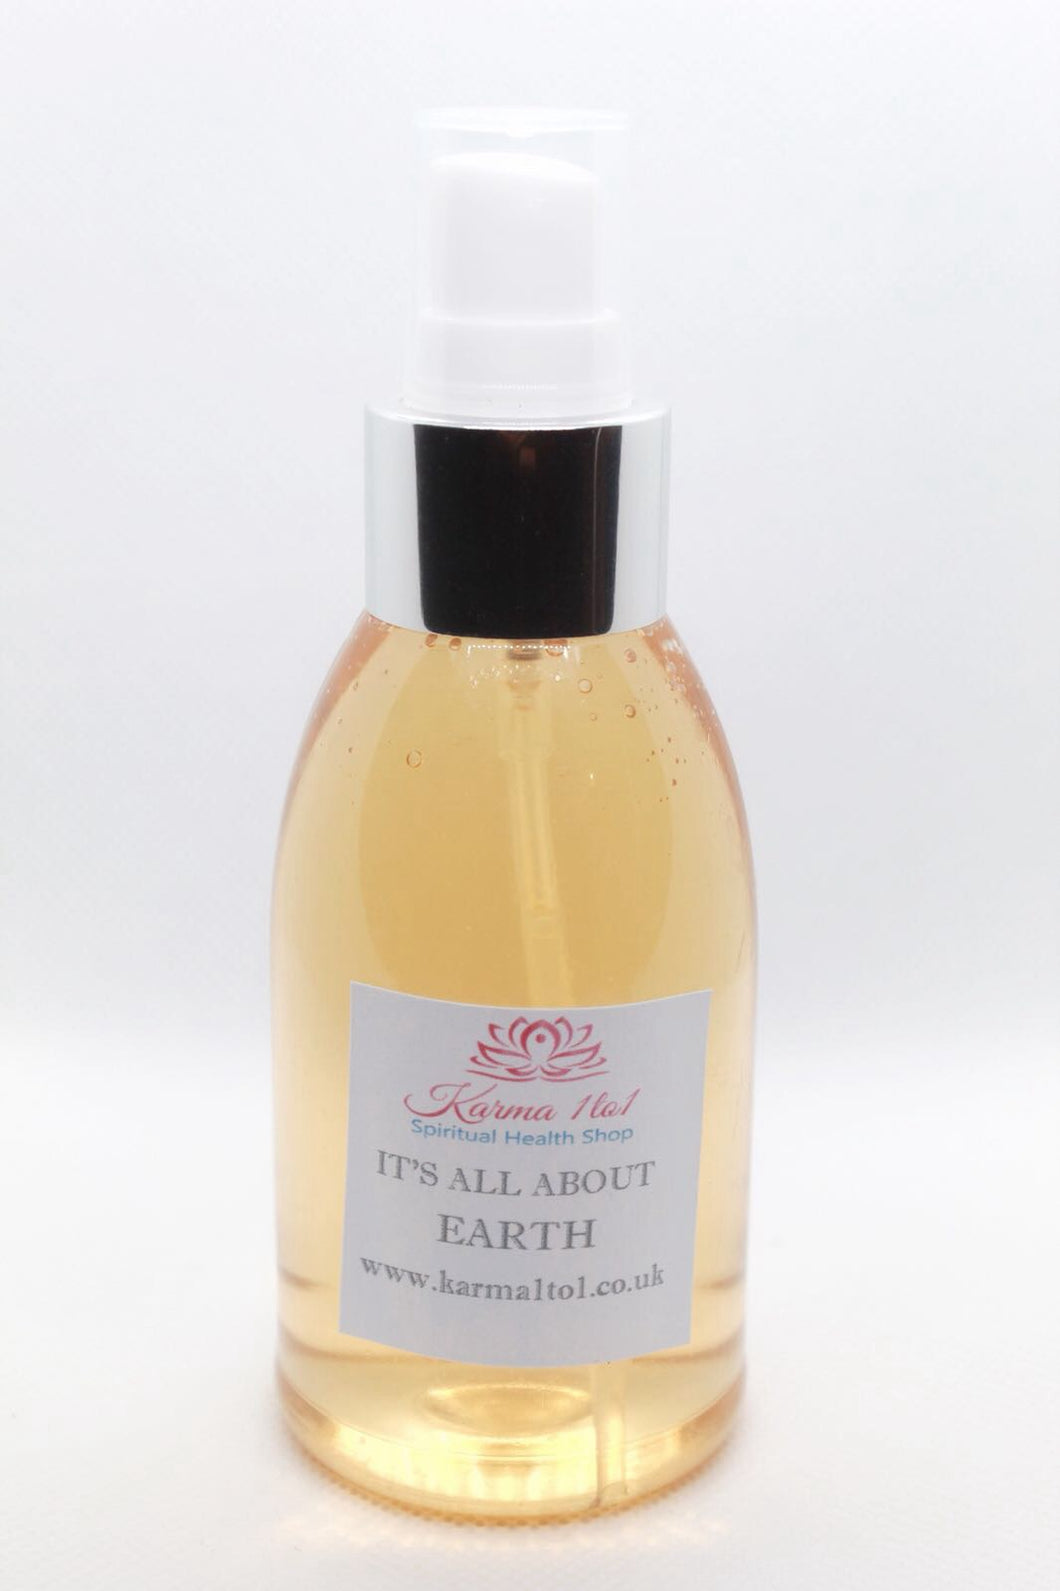 It's All About Earth Mist